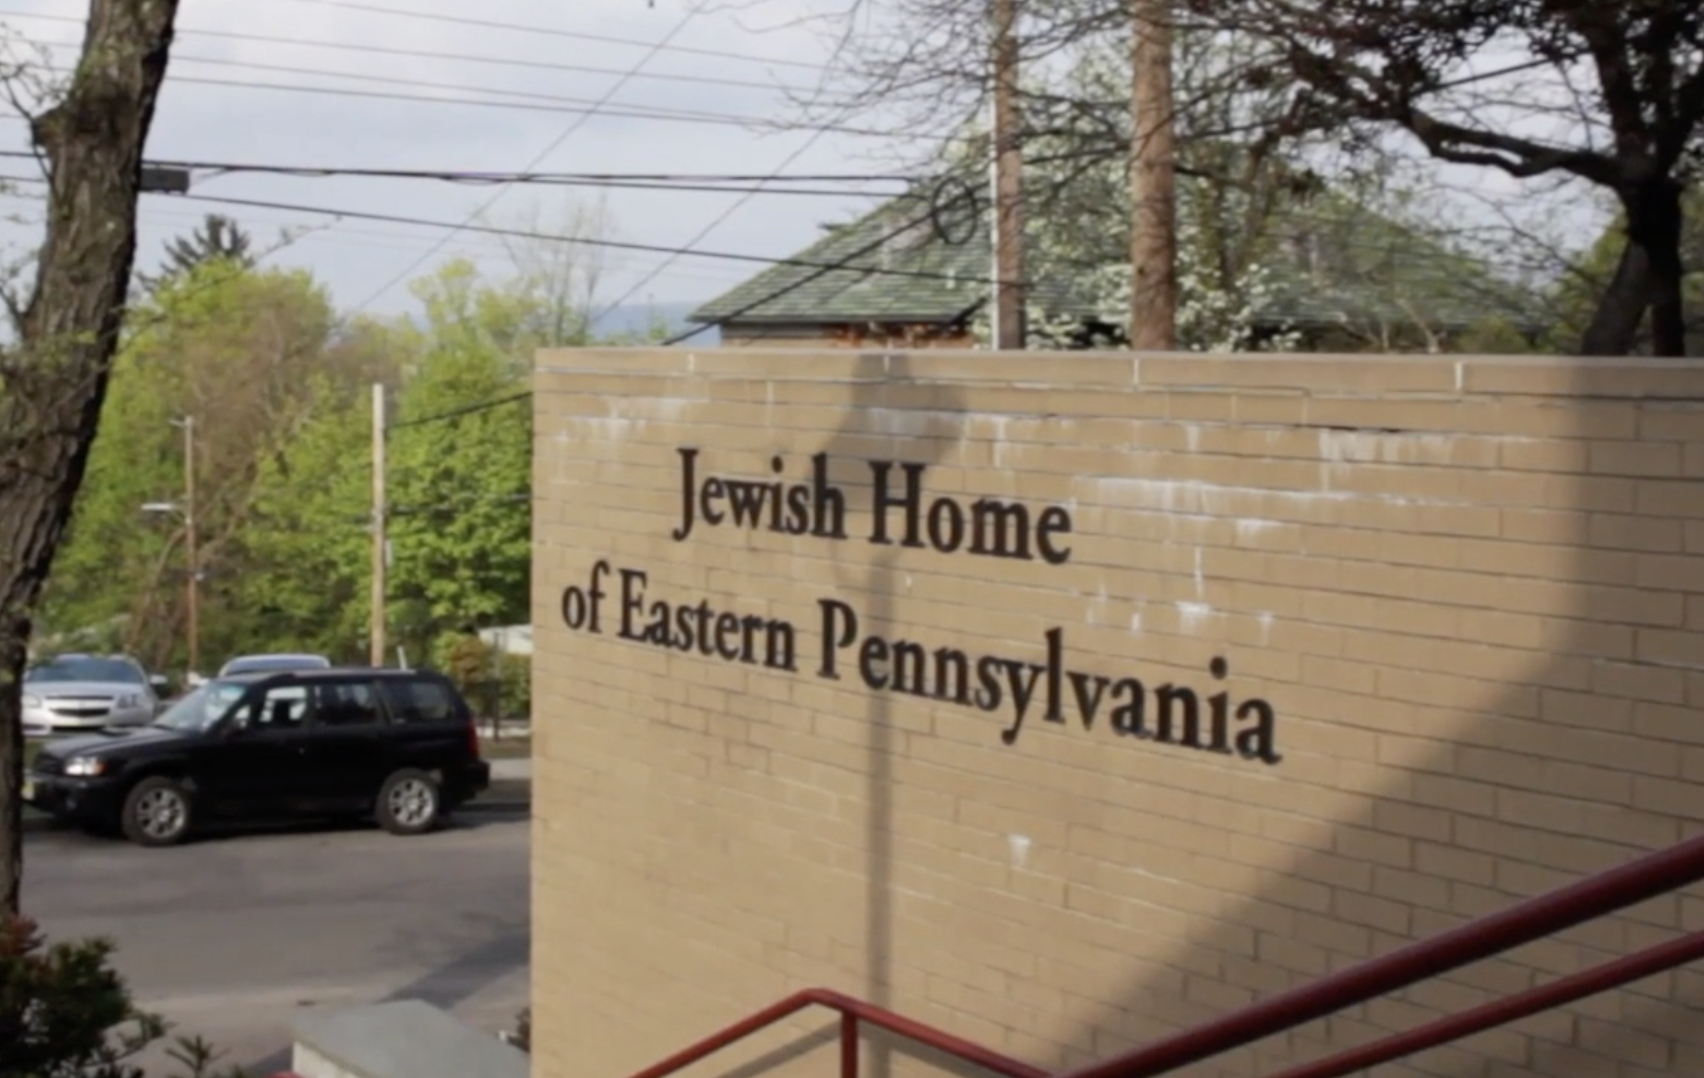 Blog: Jewish Home of Eastern Pennsylvania Offers Exceptional Specialized Support for Memory Care